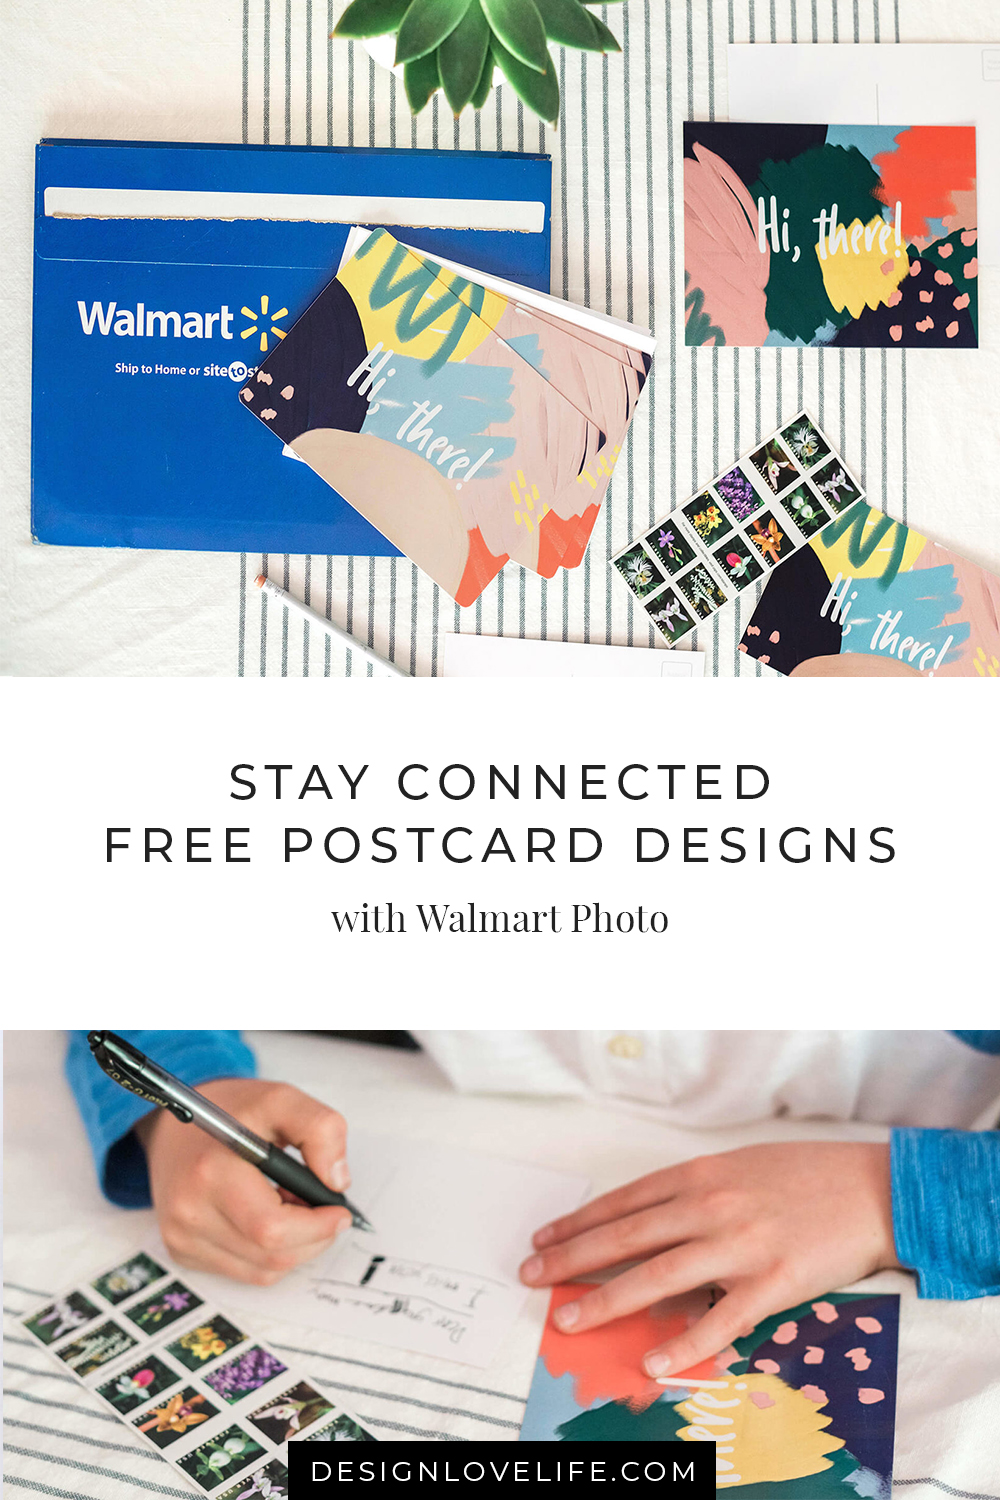 Start with a pen pal by creating your own postcards. Download Design Love Life design's and print with Walmart Photo